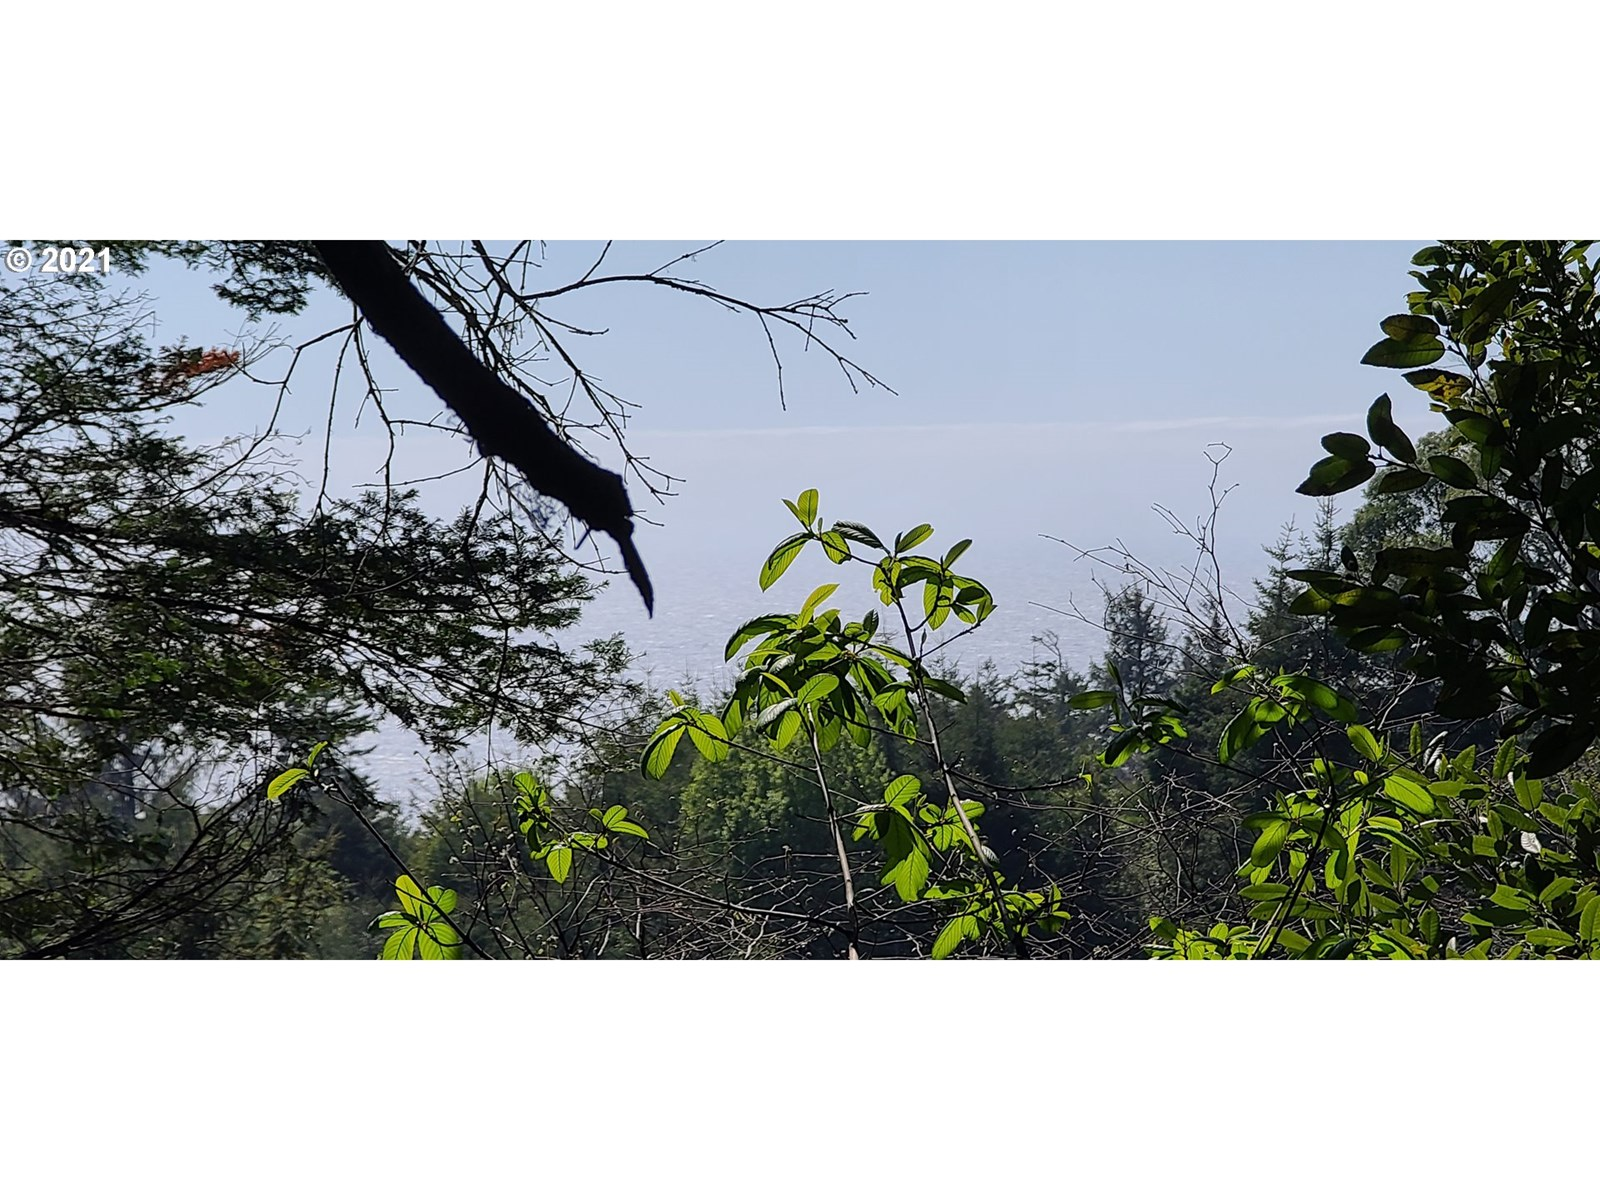 8.4 ACRES OF RAW LAND FOR SALE WITH MOUNTAIN AND OCEAN VIEWS